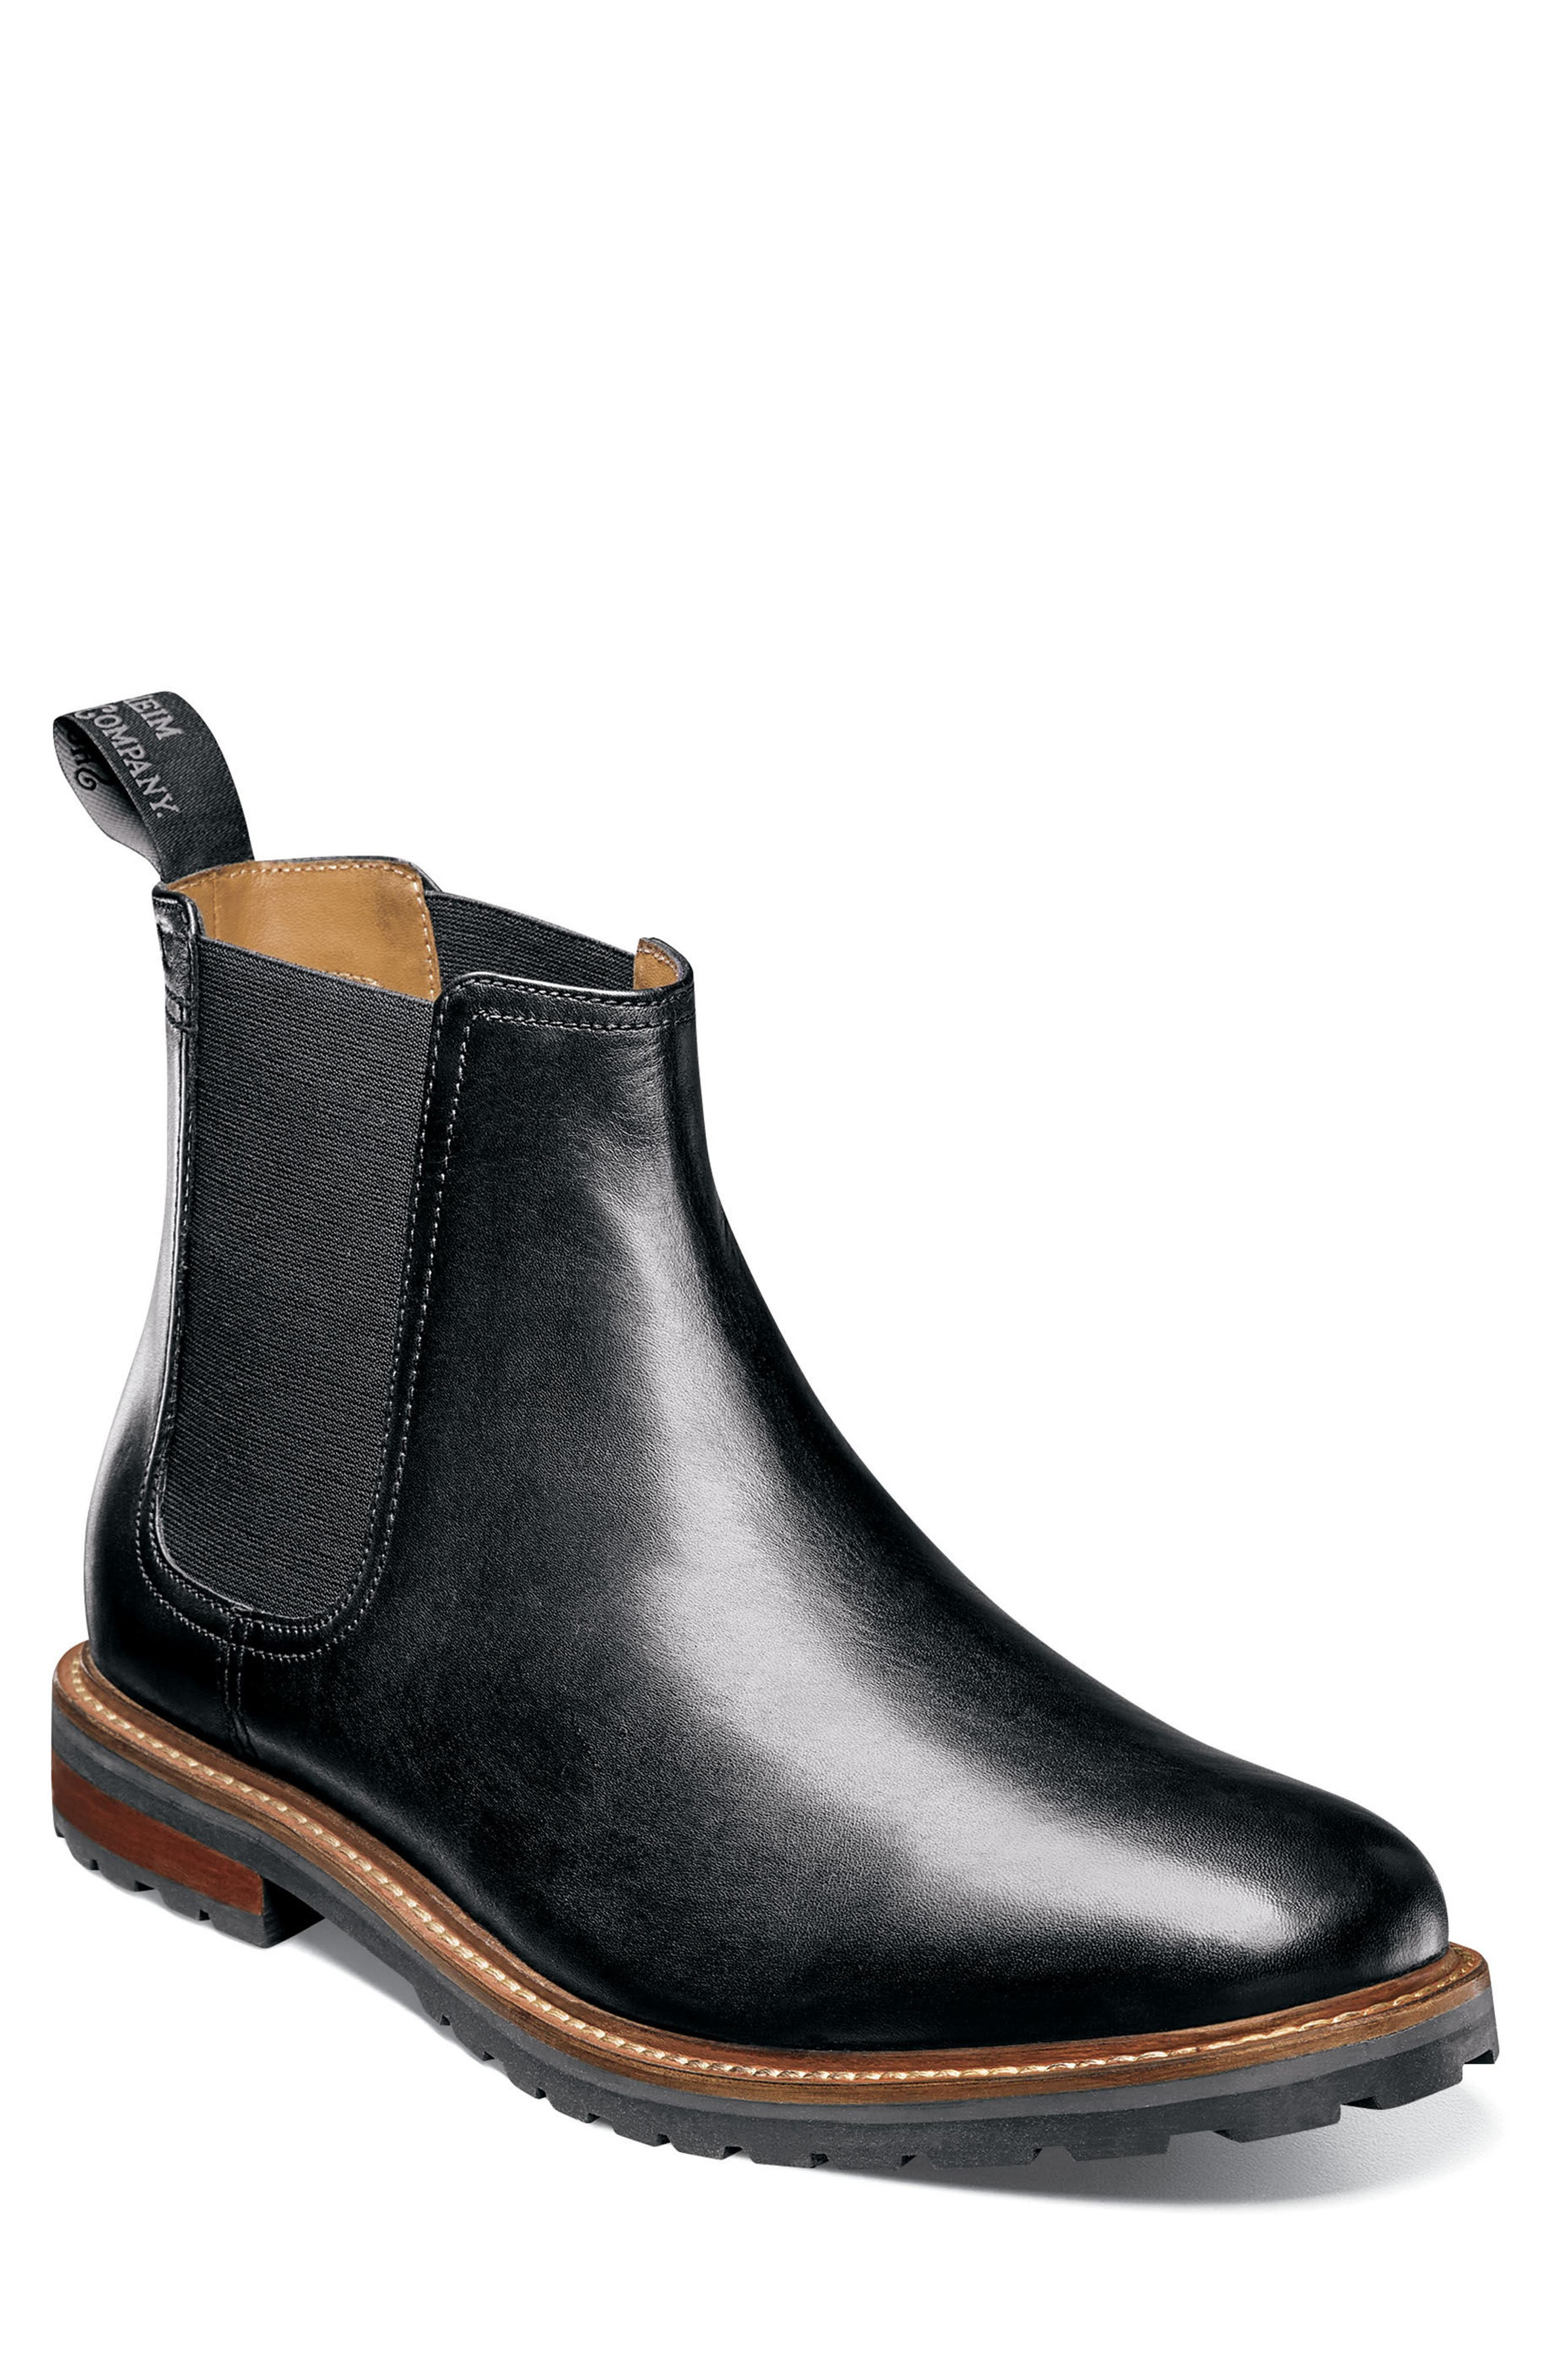 Estabrook Mid Chelsea Boot,                             Main thumbnail 1, color,                             BLACK LEATHER